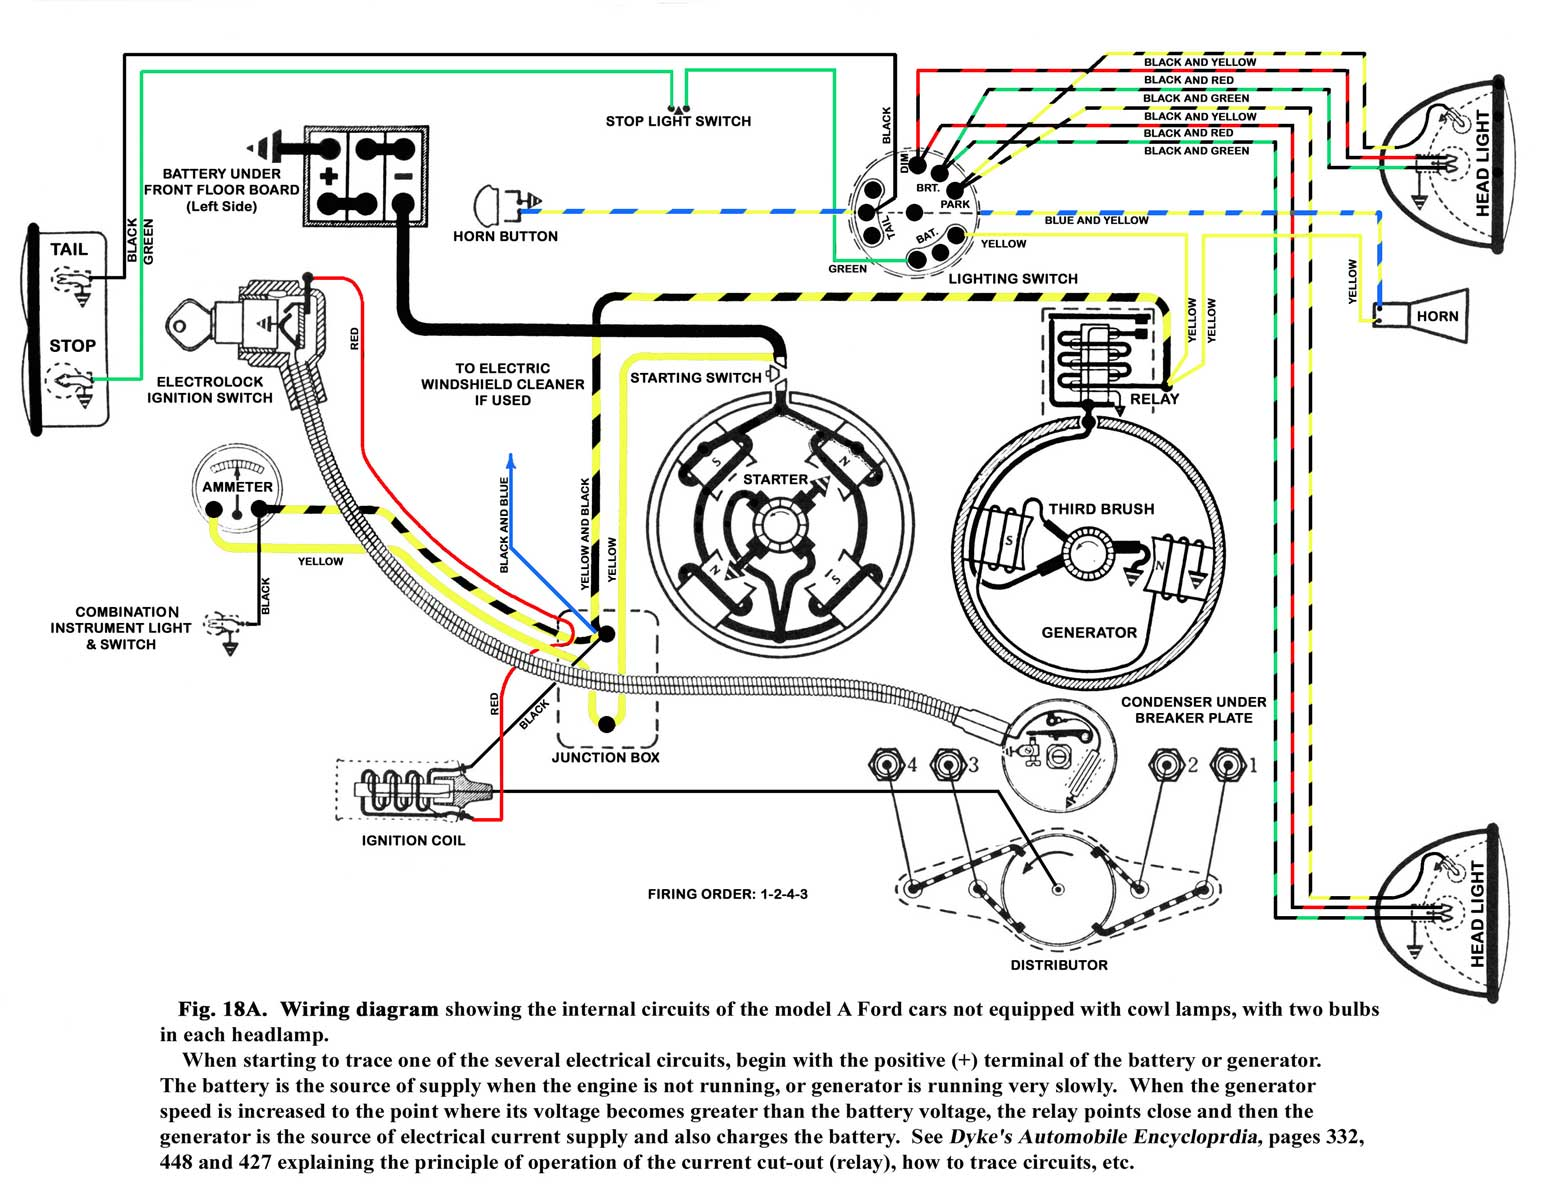 model a wiring diagram capitol a's model t electrical system ford model a wiring diagram #3